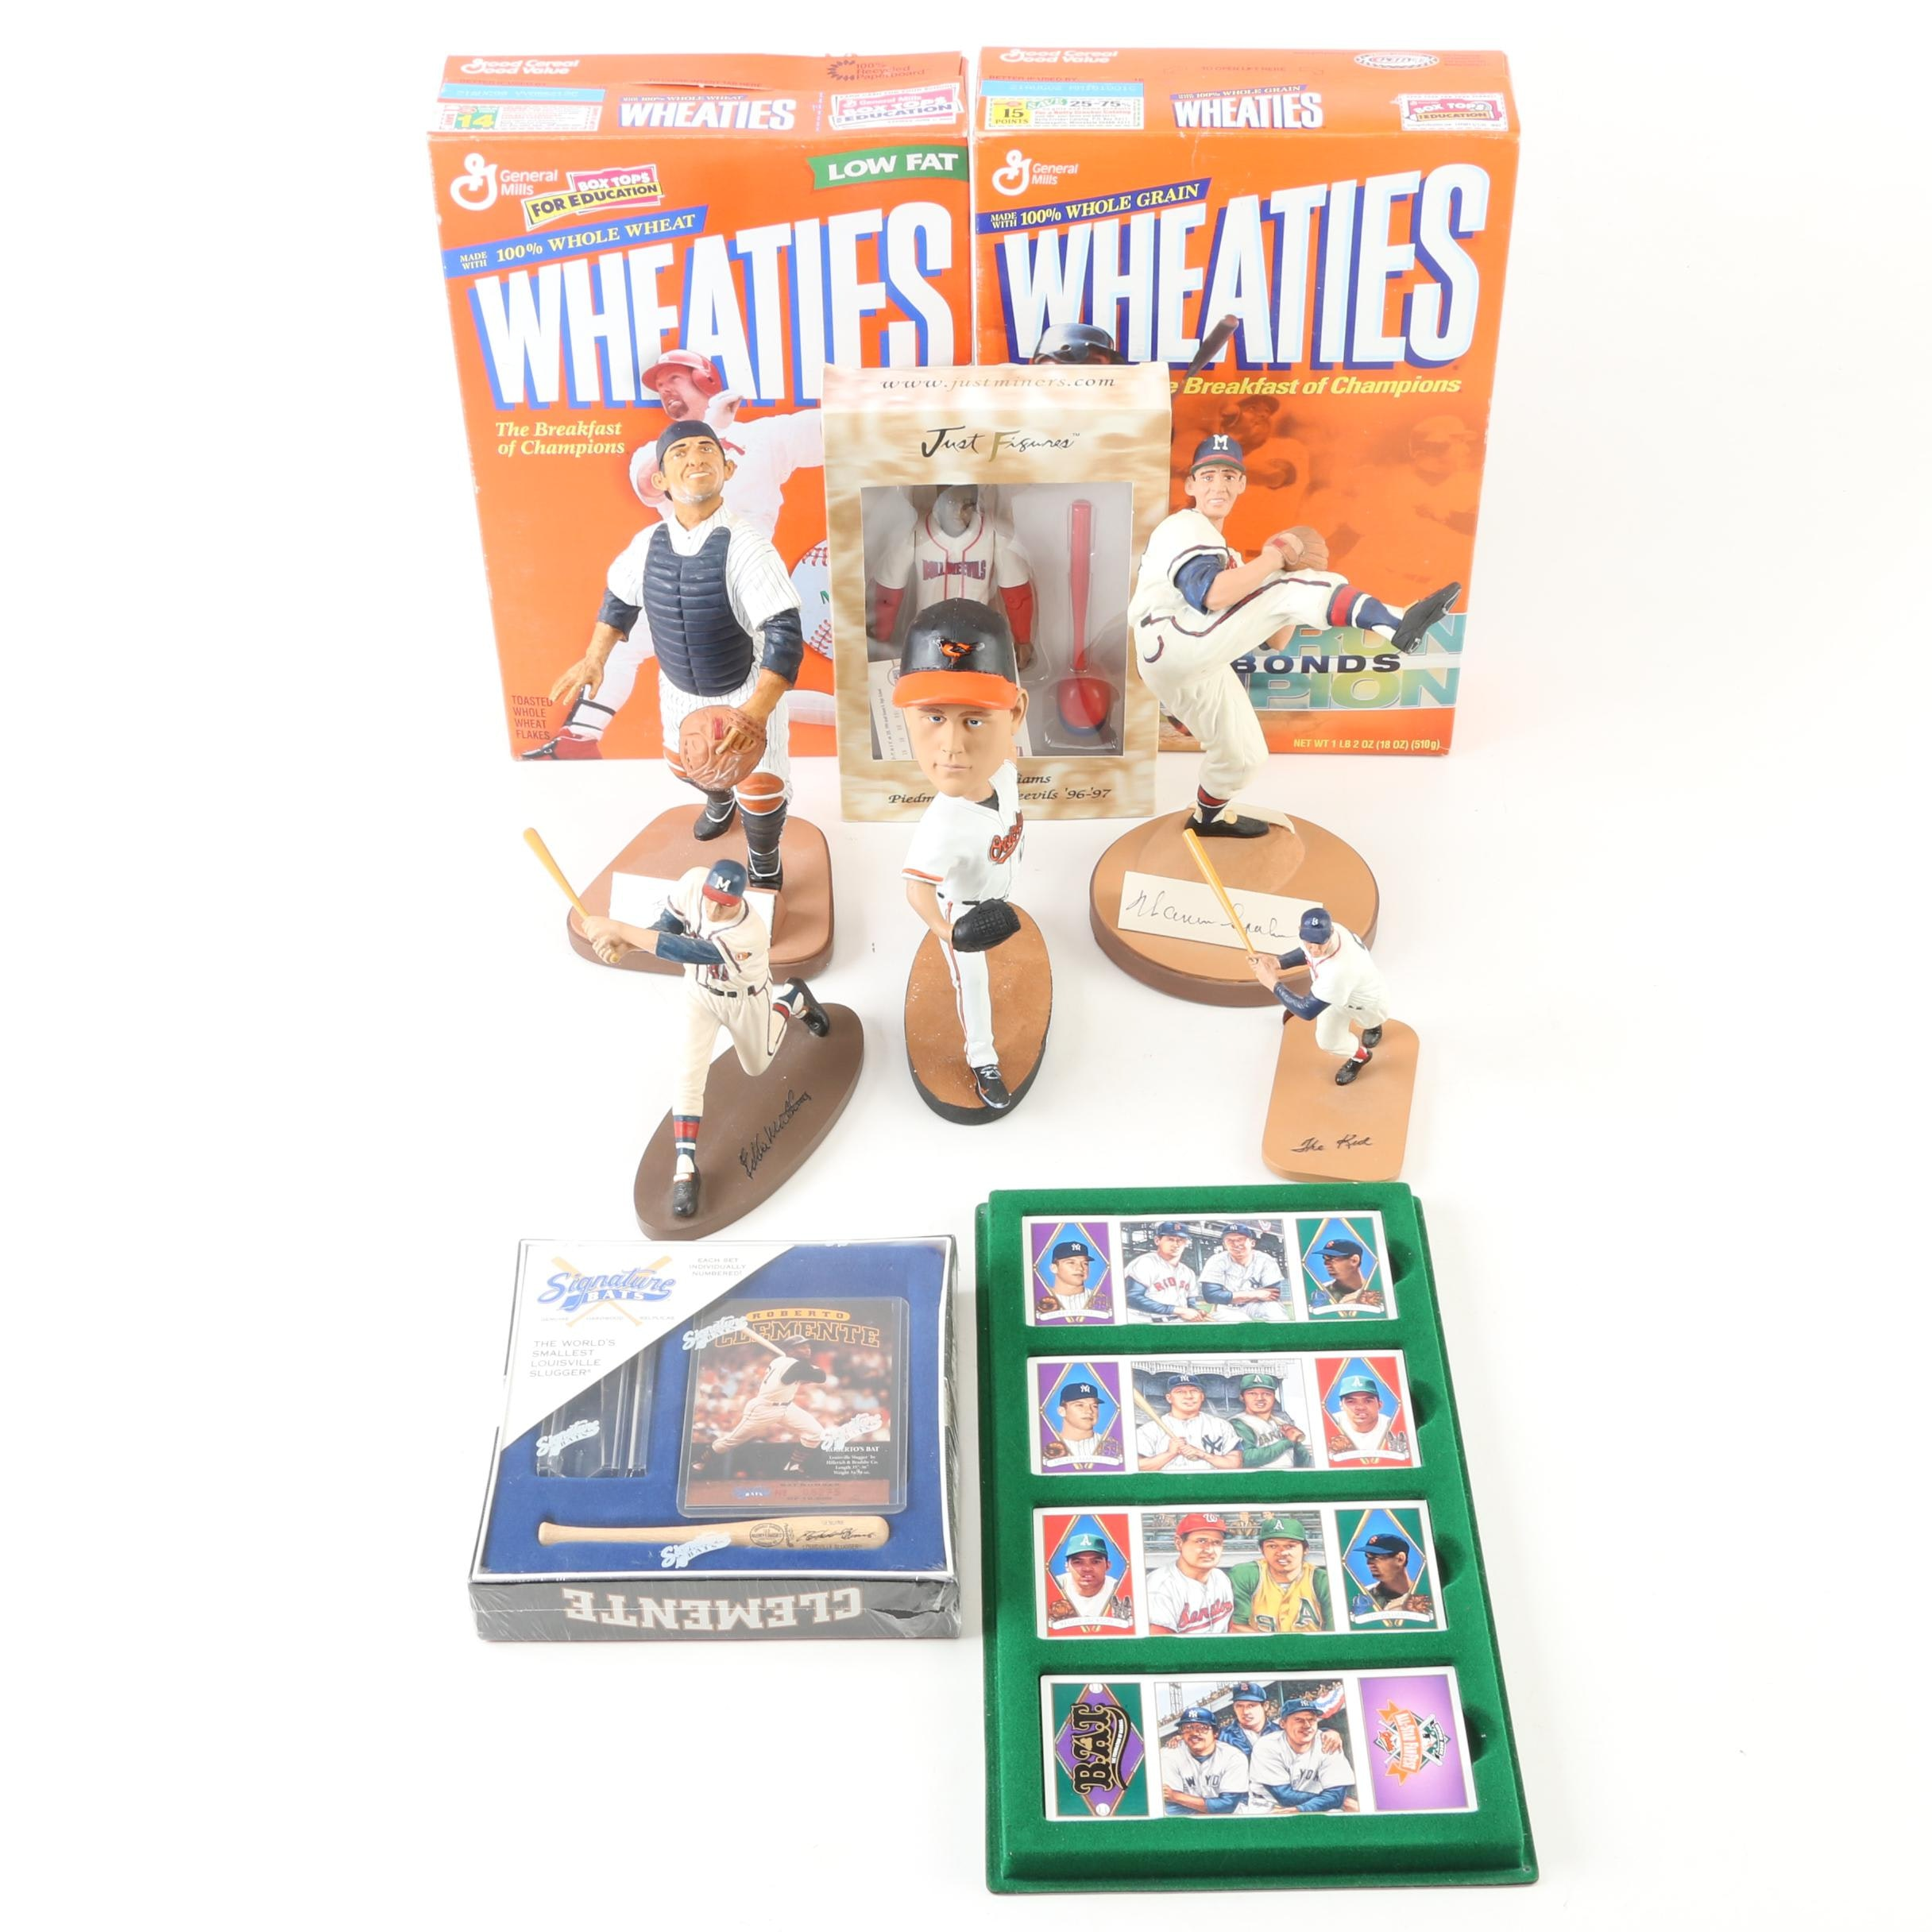 Assorted Baseball Figurines, Cards and Wheaties Boxes